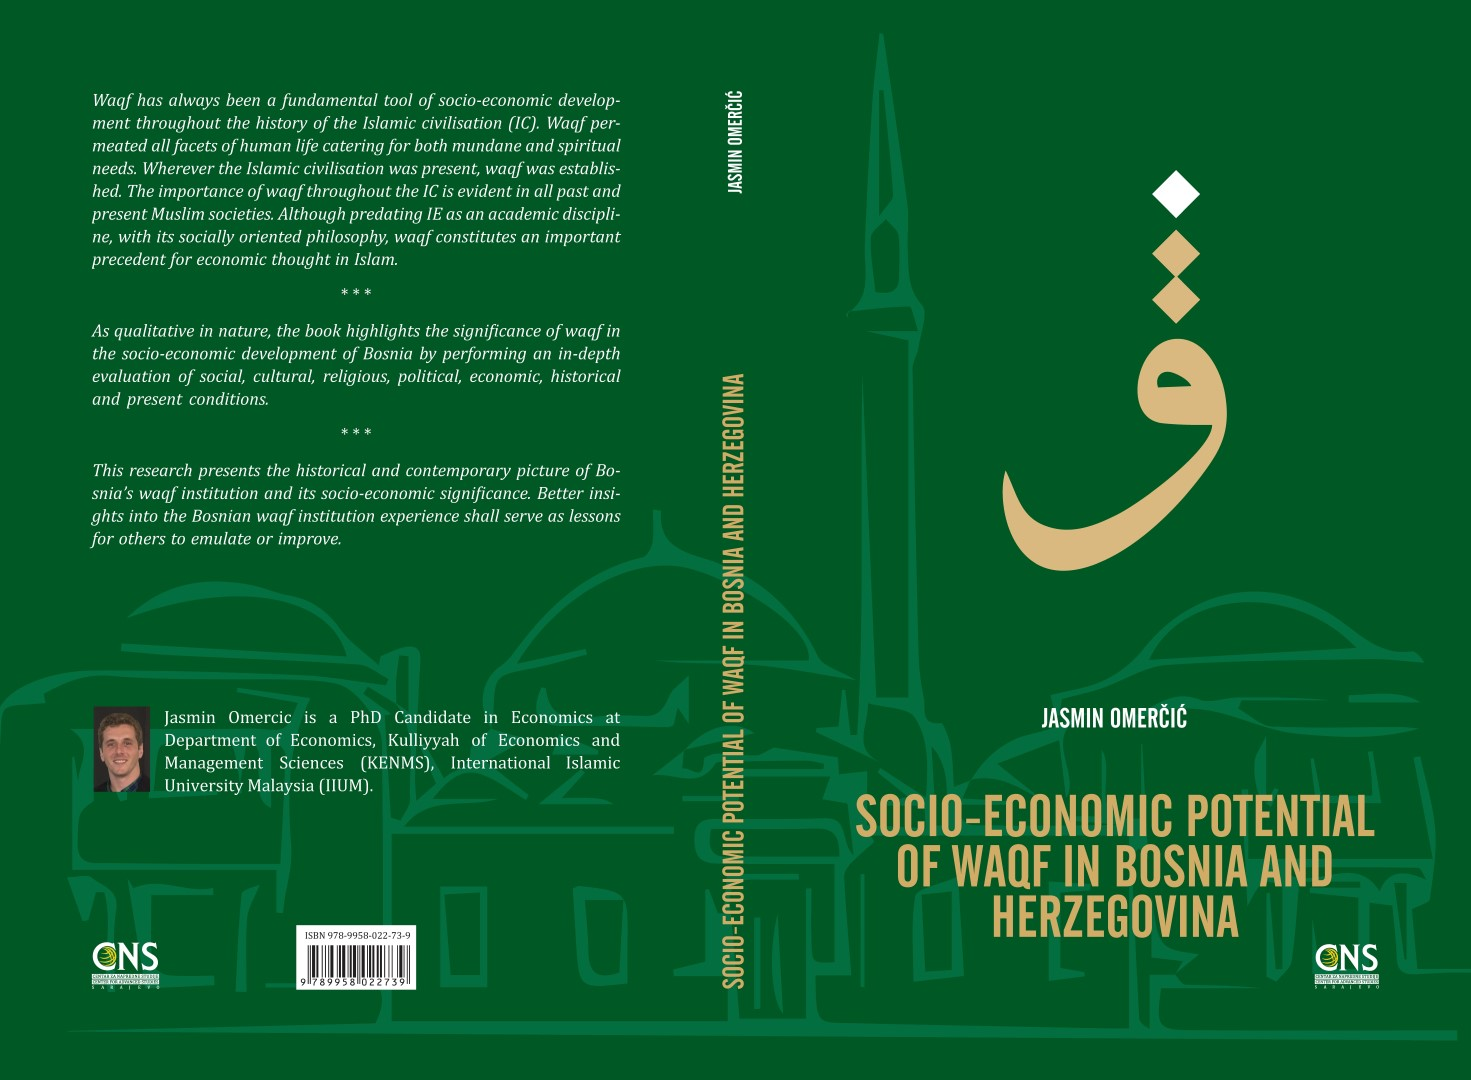 Socio-economic potential of waqf in Bosnia and Herzegovina